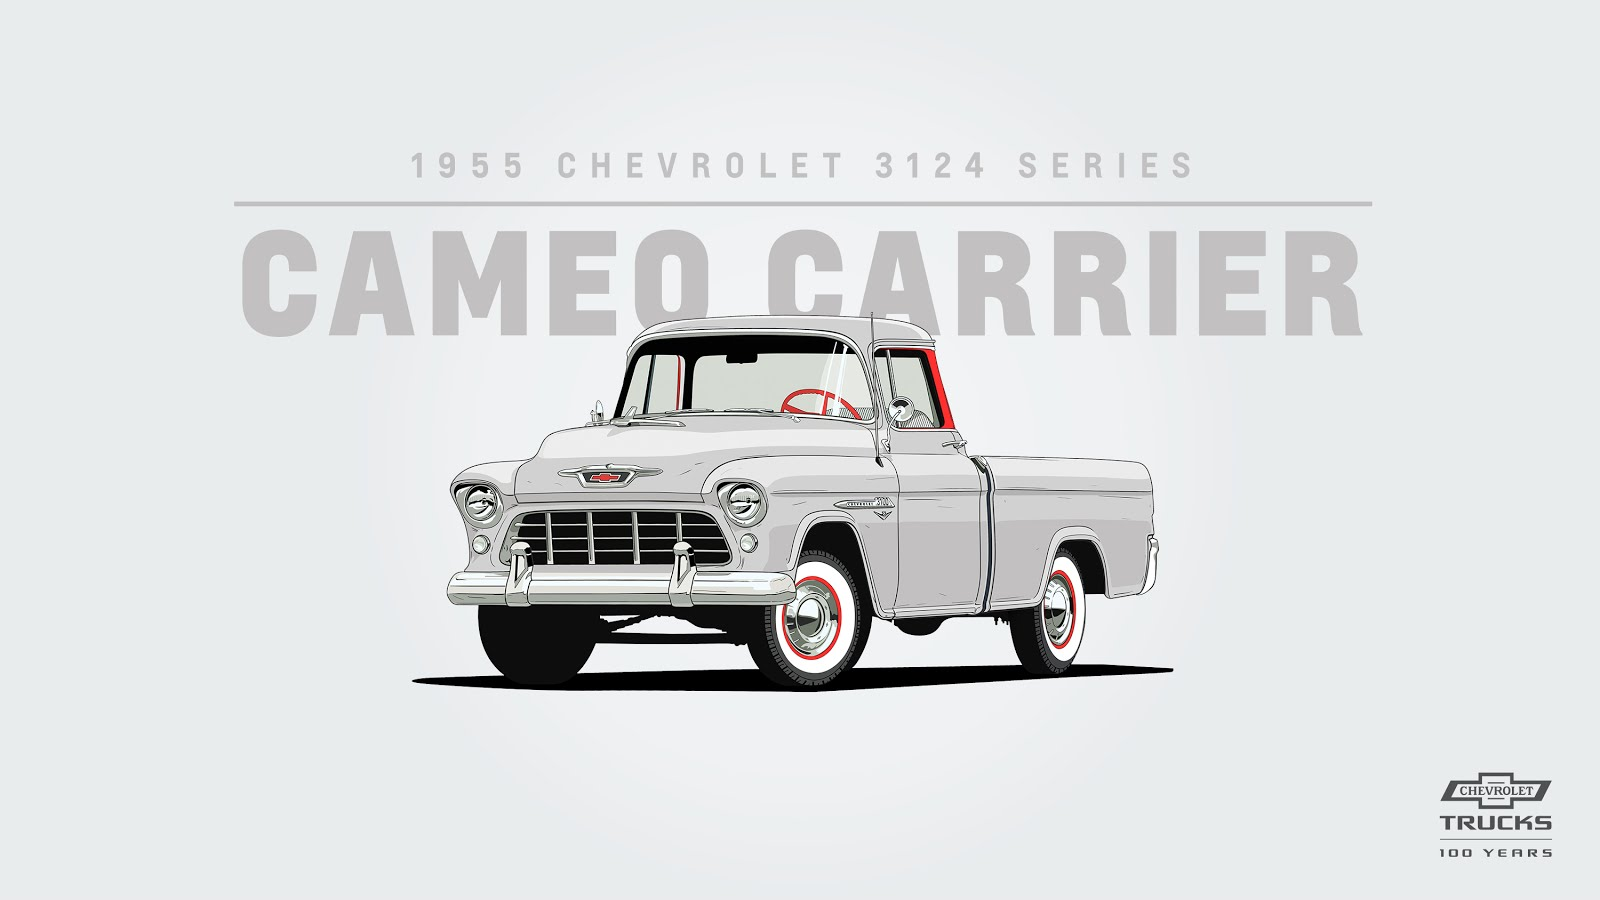 producing 123 horsepower with its 3 85l i 6 engine the 1955 chevrolet 3124 series was the first fleetside flat sided truck in the industry  [ 1600 x 900 Pixel ]